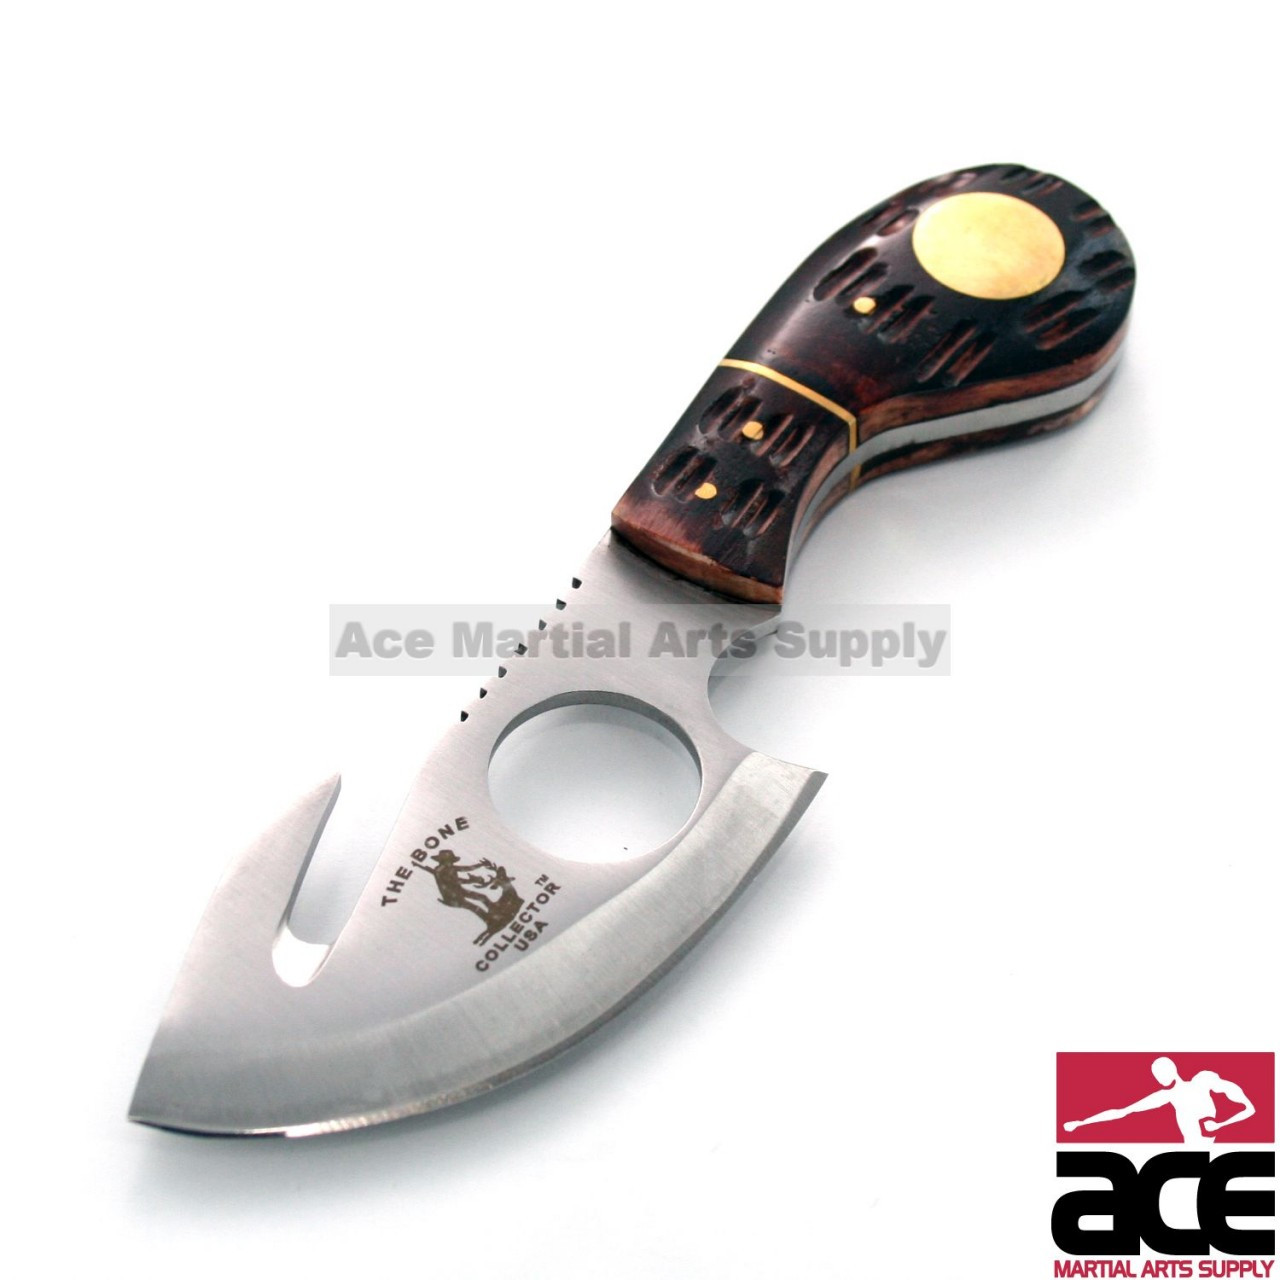 7 Bone Collector Fixed Blade Gut Hook Skinning Knife Hunting Bowie Fish Skinner In Los Angeles Store